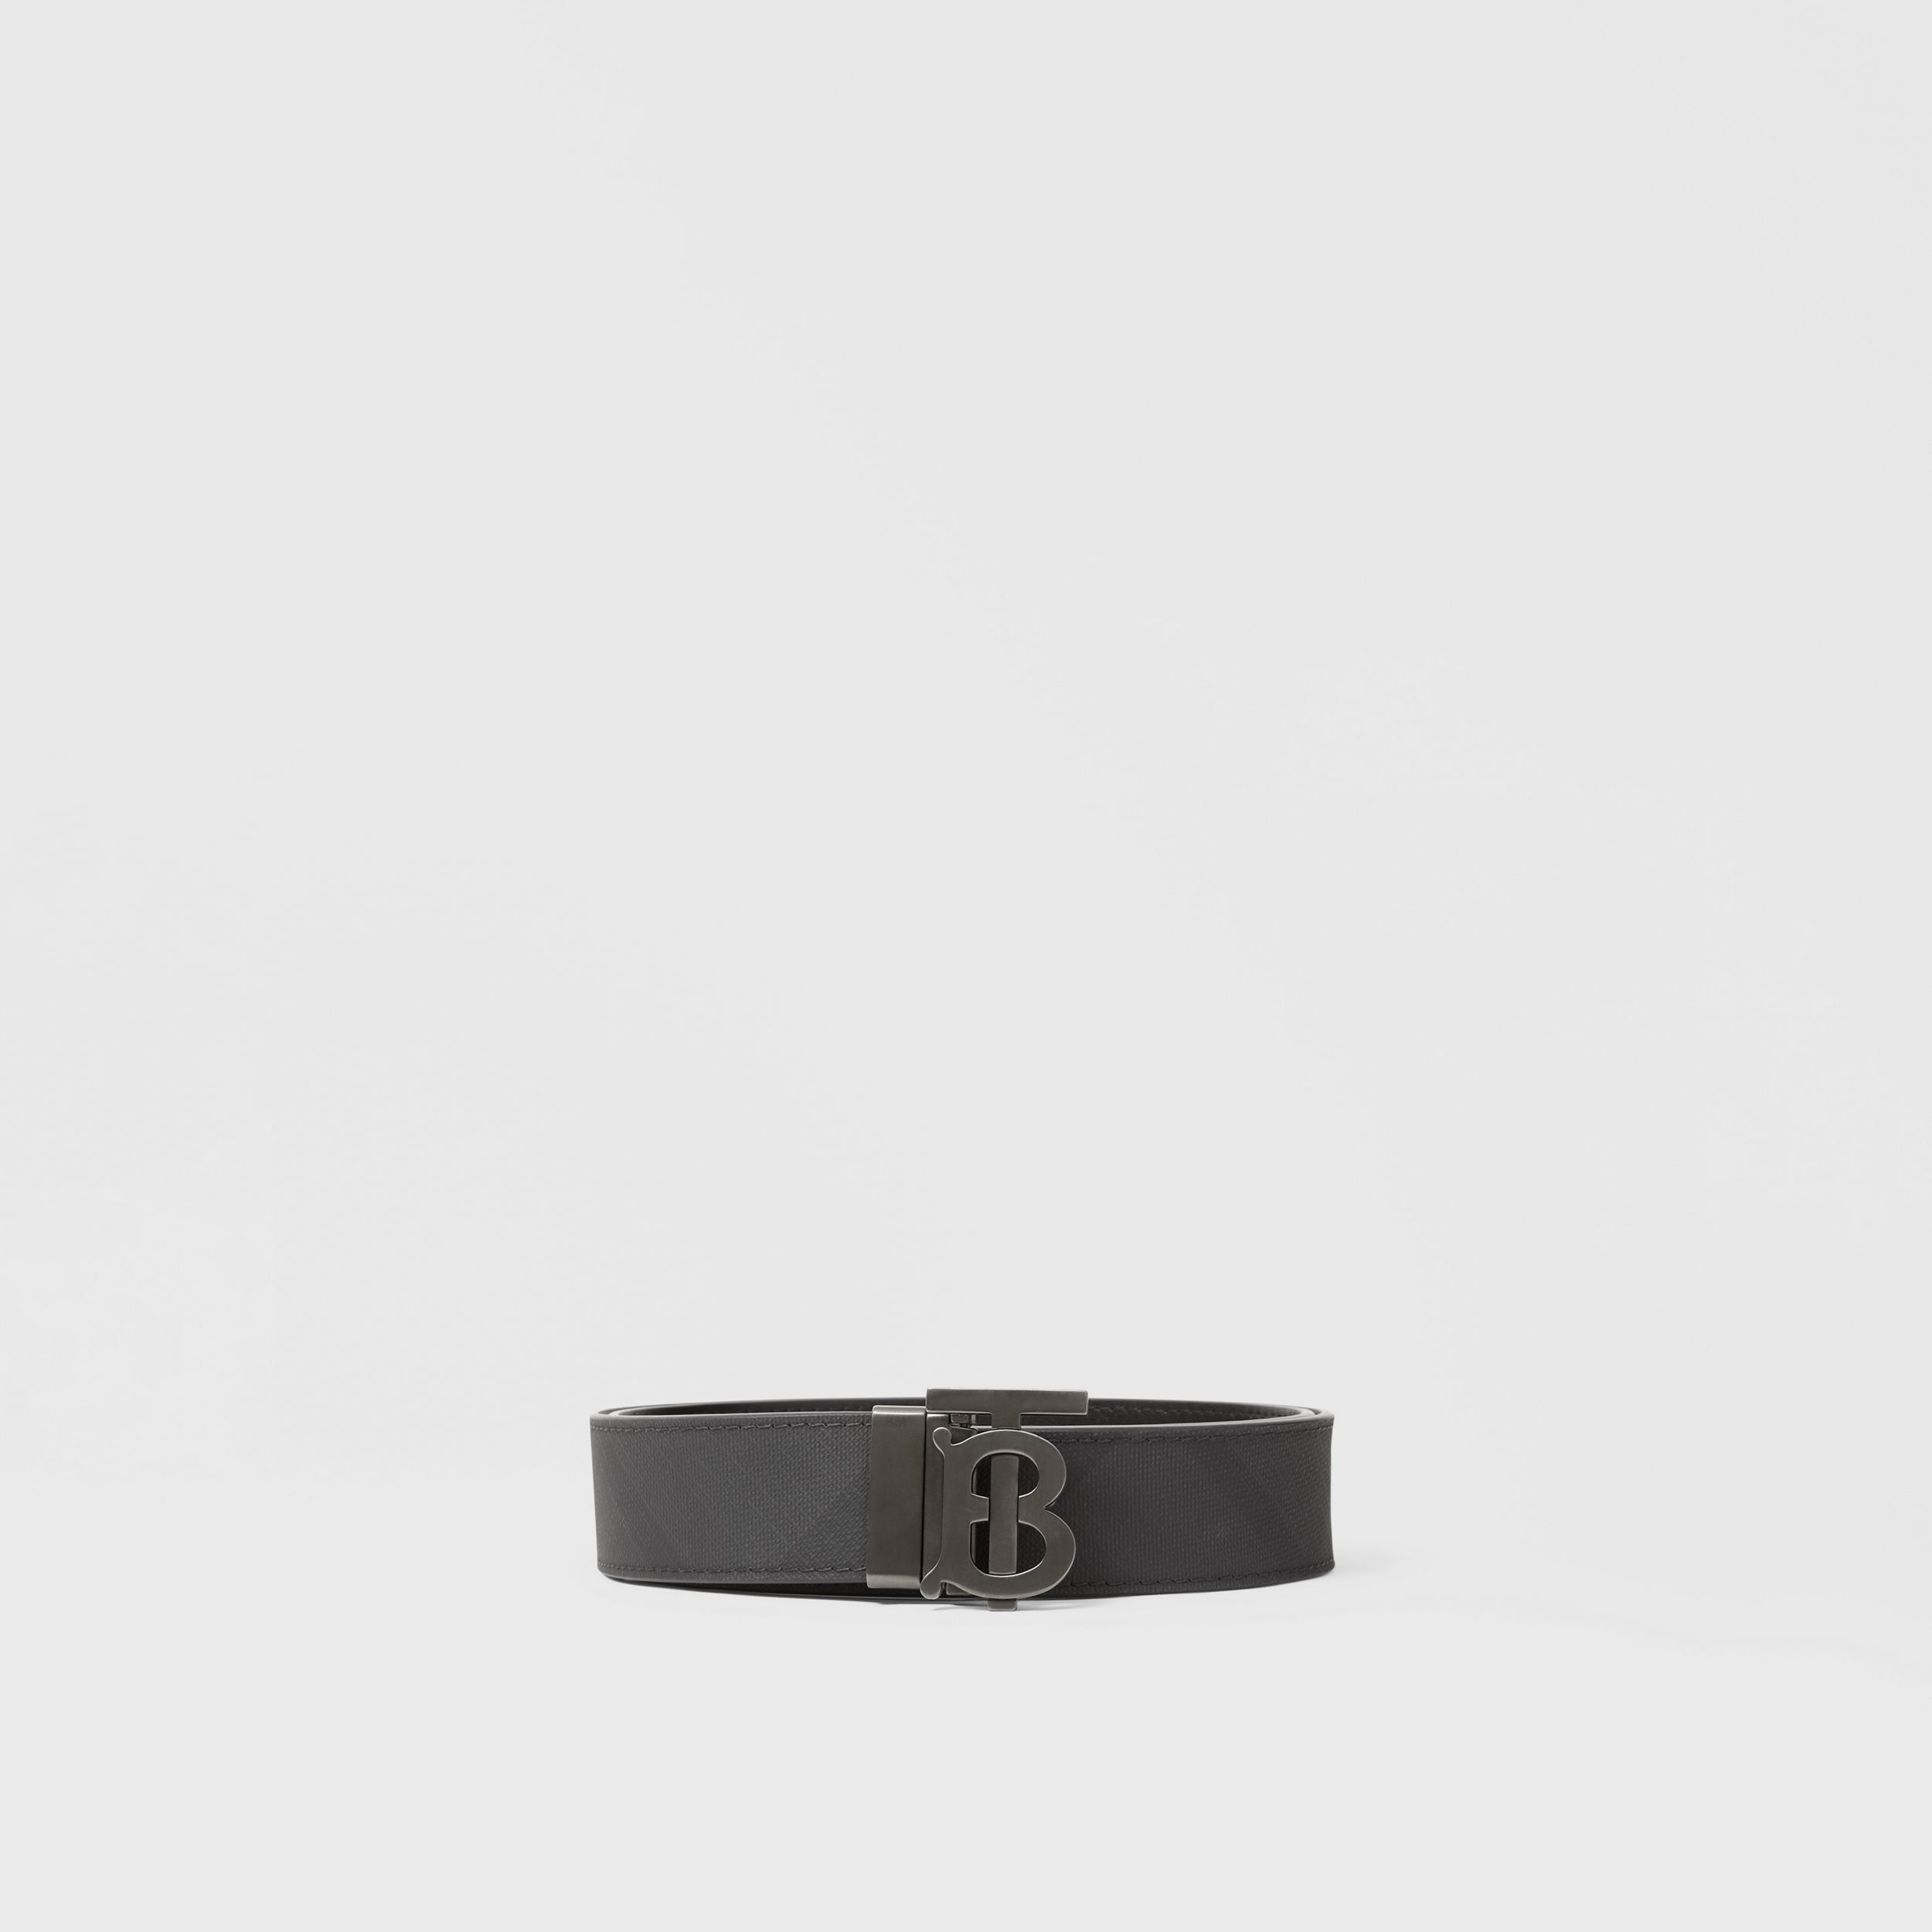 Reversible Monogram Motif London Check Belt in Dark Charcoal - Men | Burberry - 4